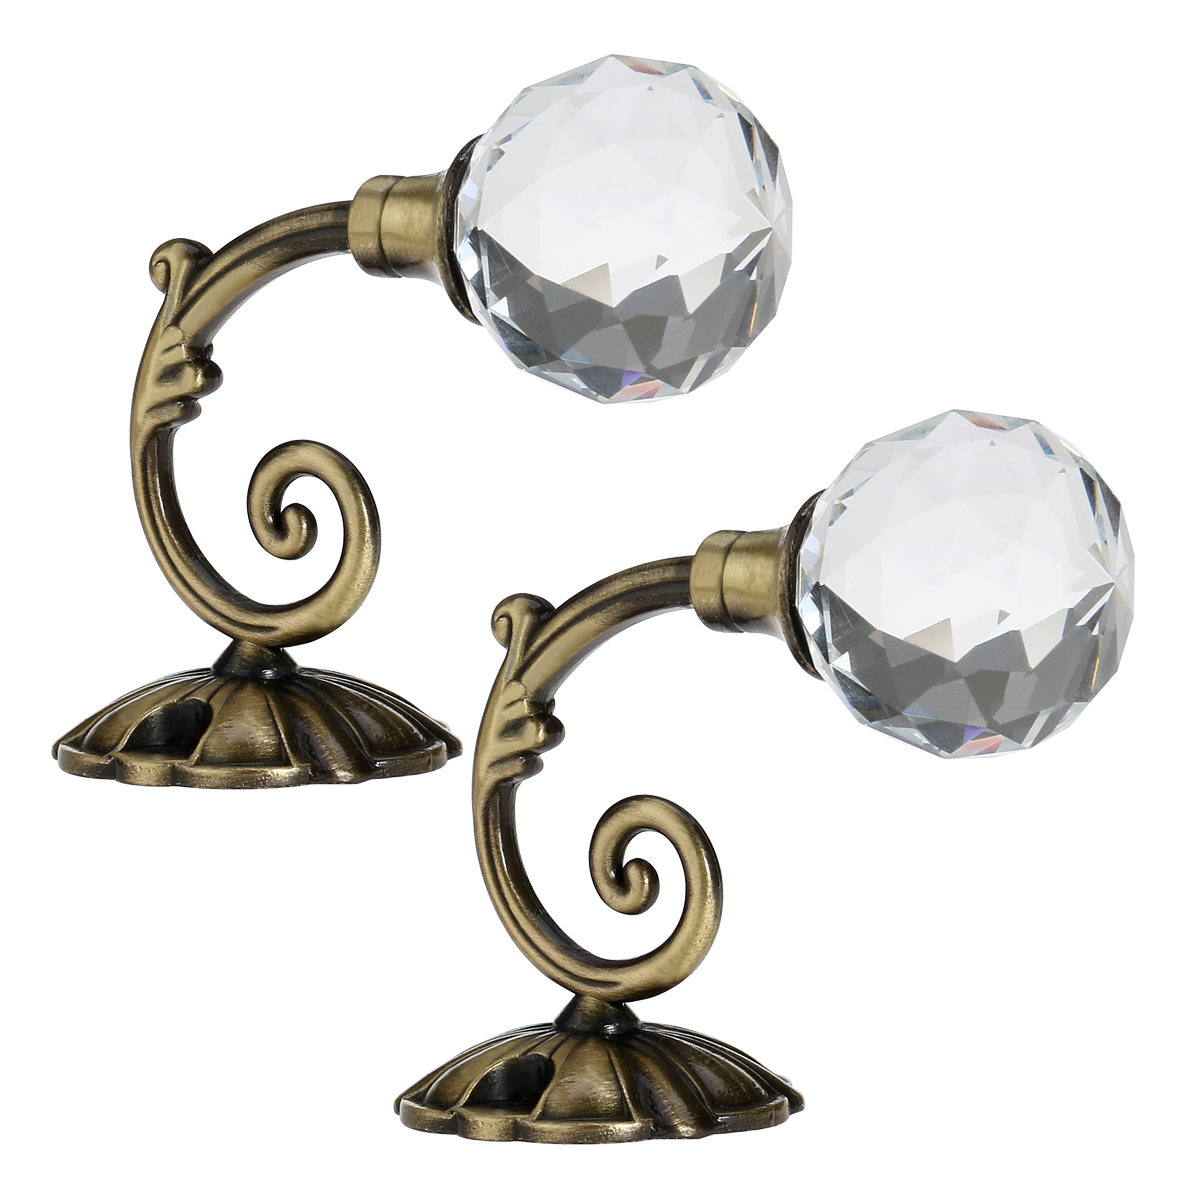 WINOMO 2pcs Crystal Ball Curtain Hookback Wall Mount Metal Curtain Holdback Tieback Hooks (Bronze)